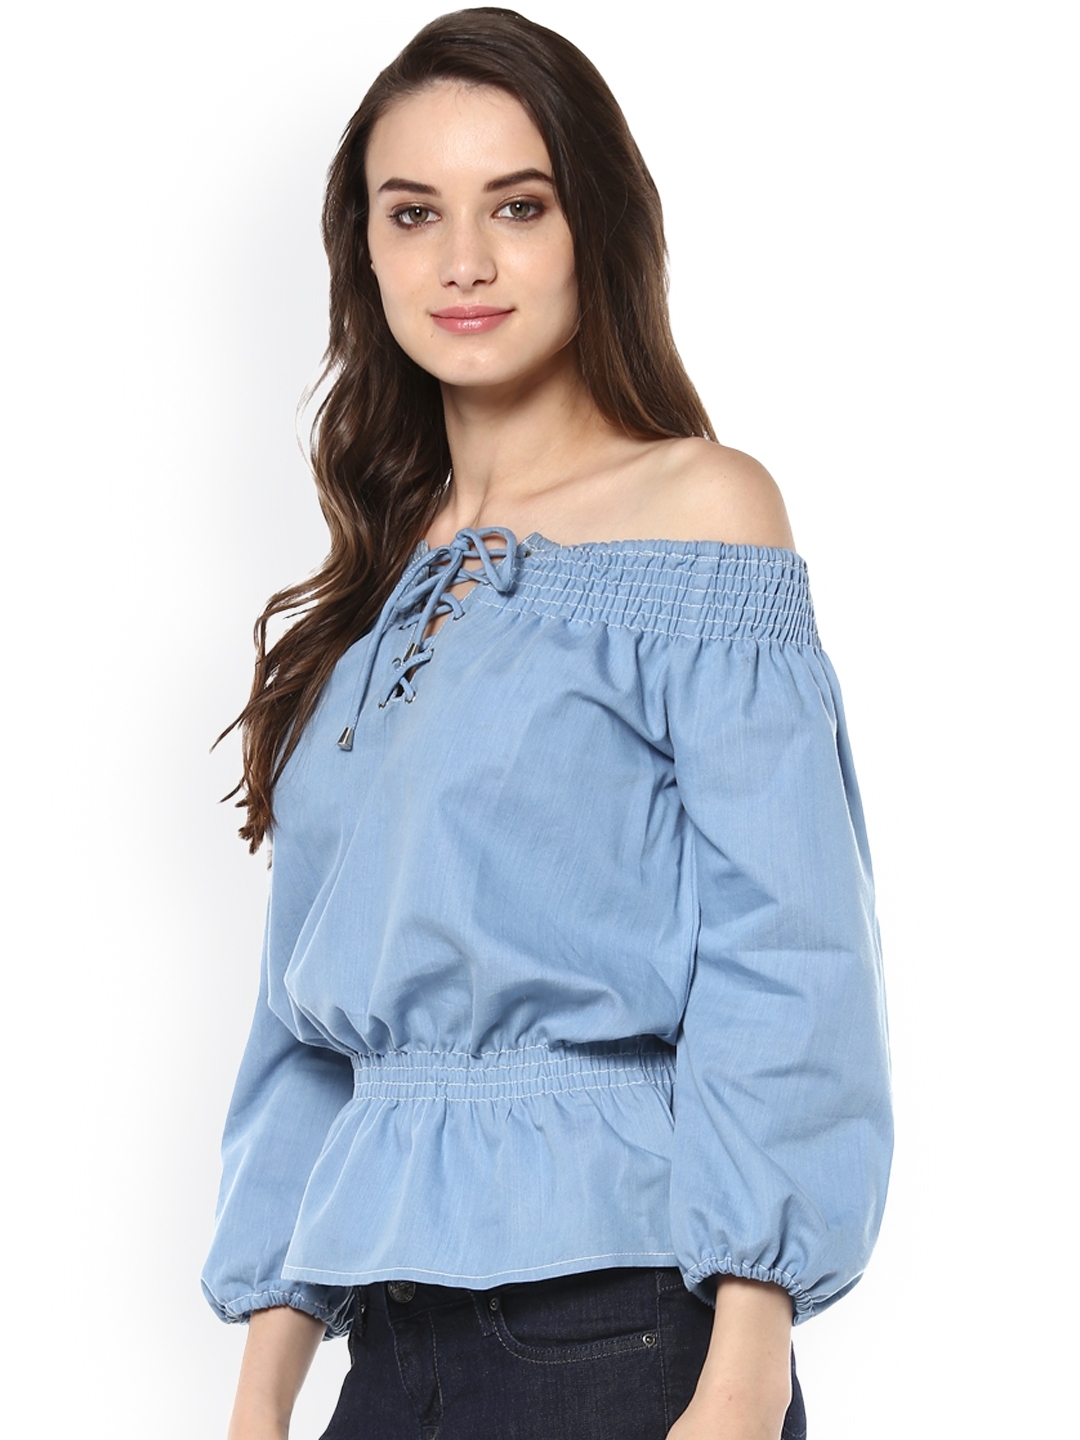 856858d5636 Buy StyleStone Women Blue Denim Off Shoulder Cinched Waist Top ...